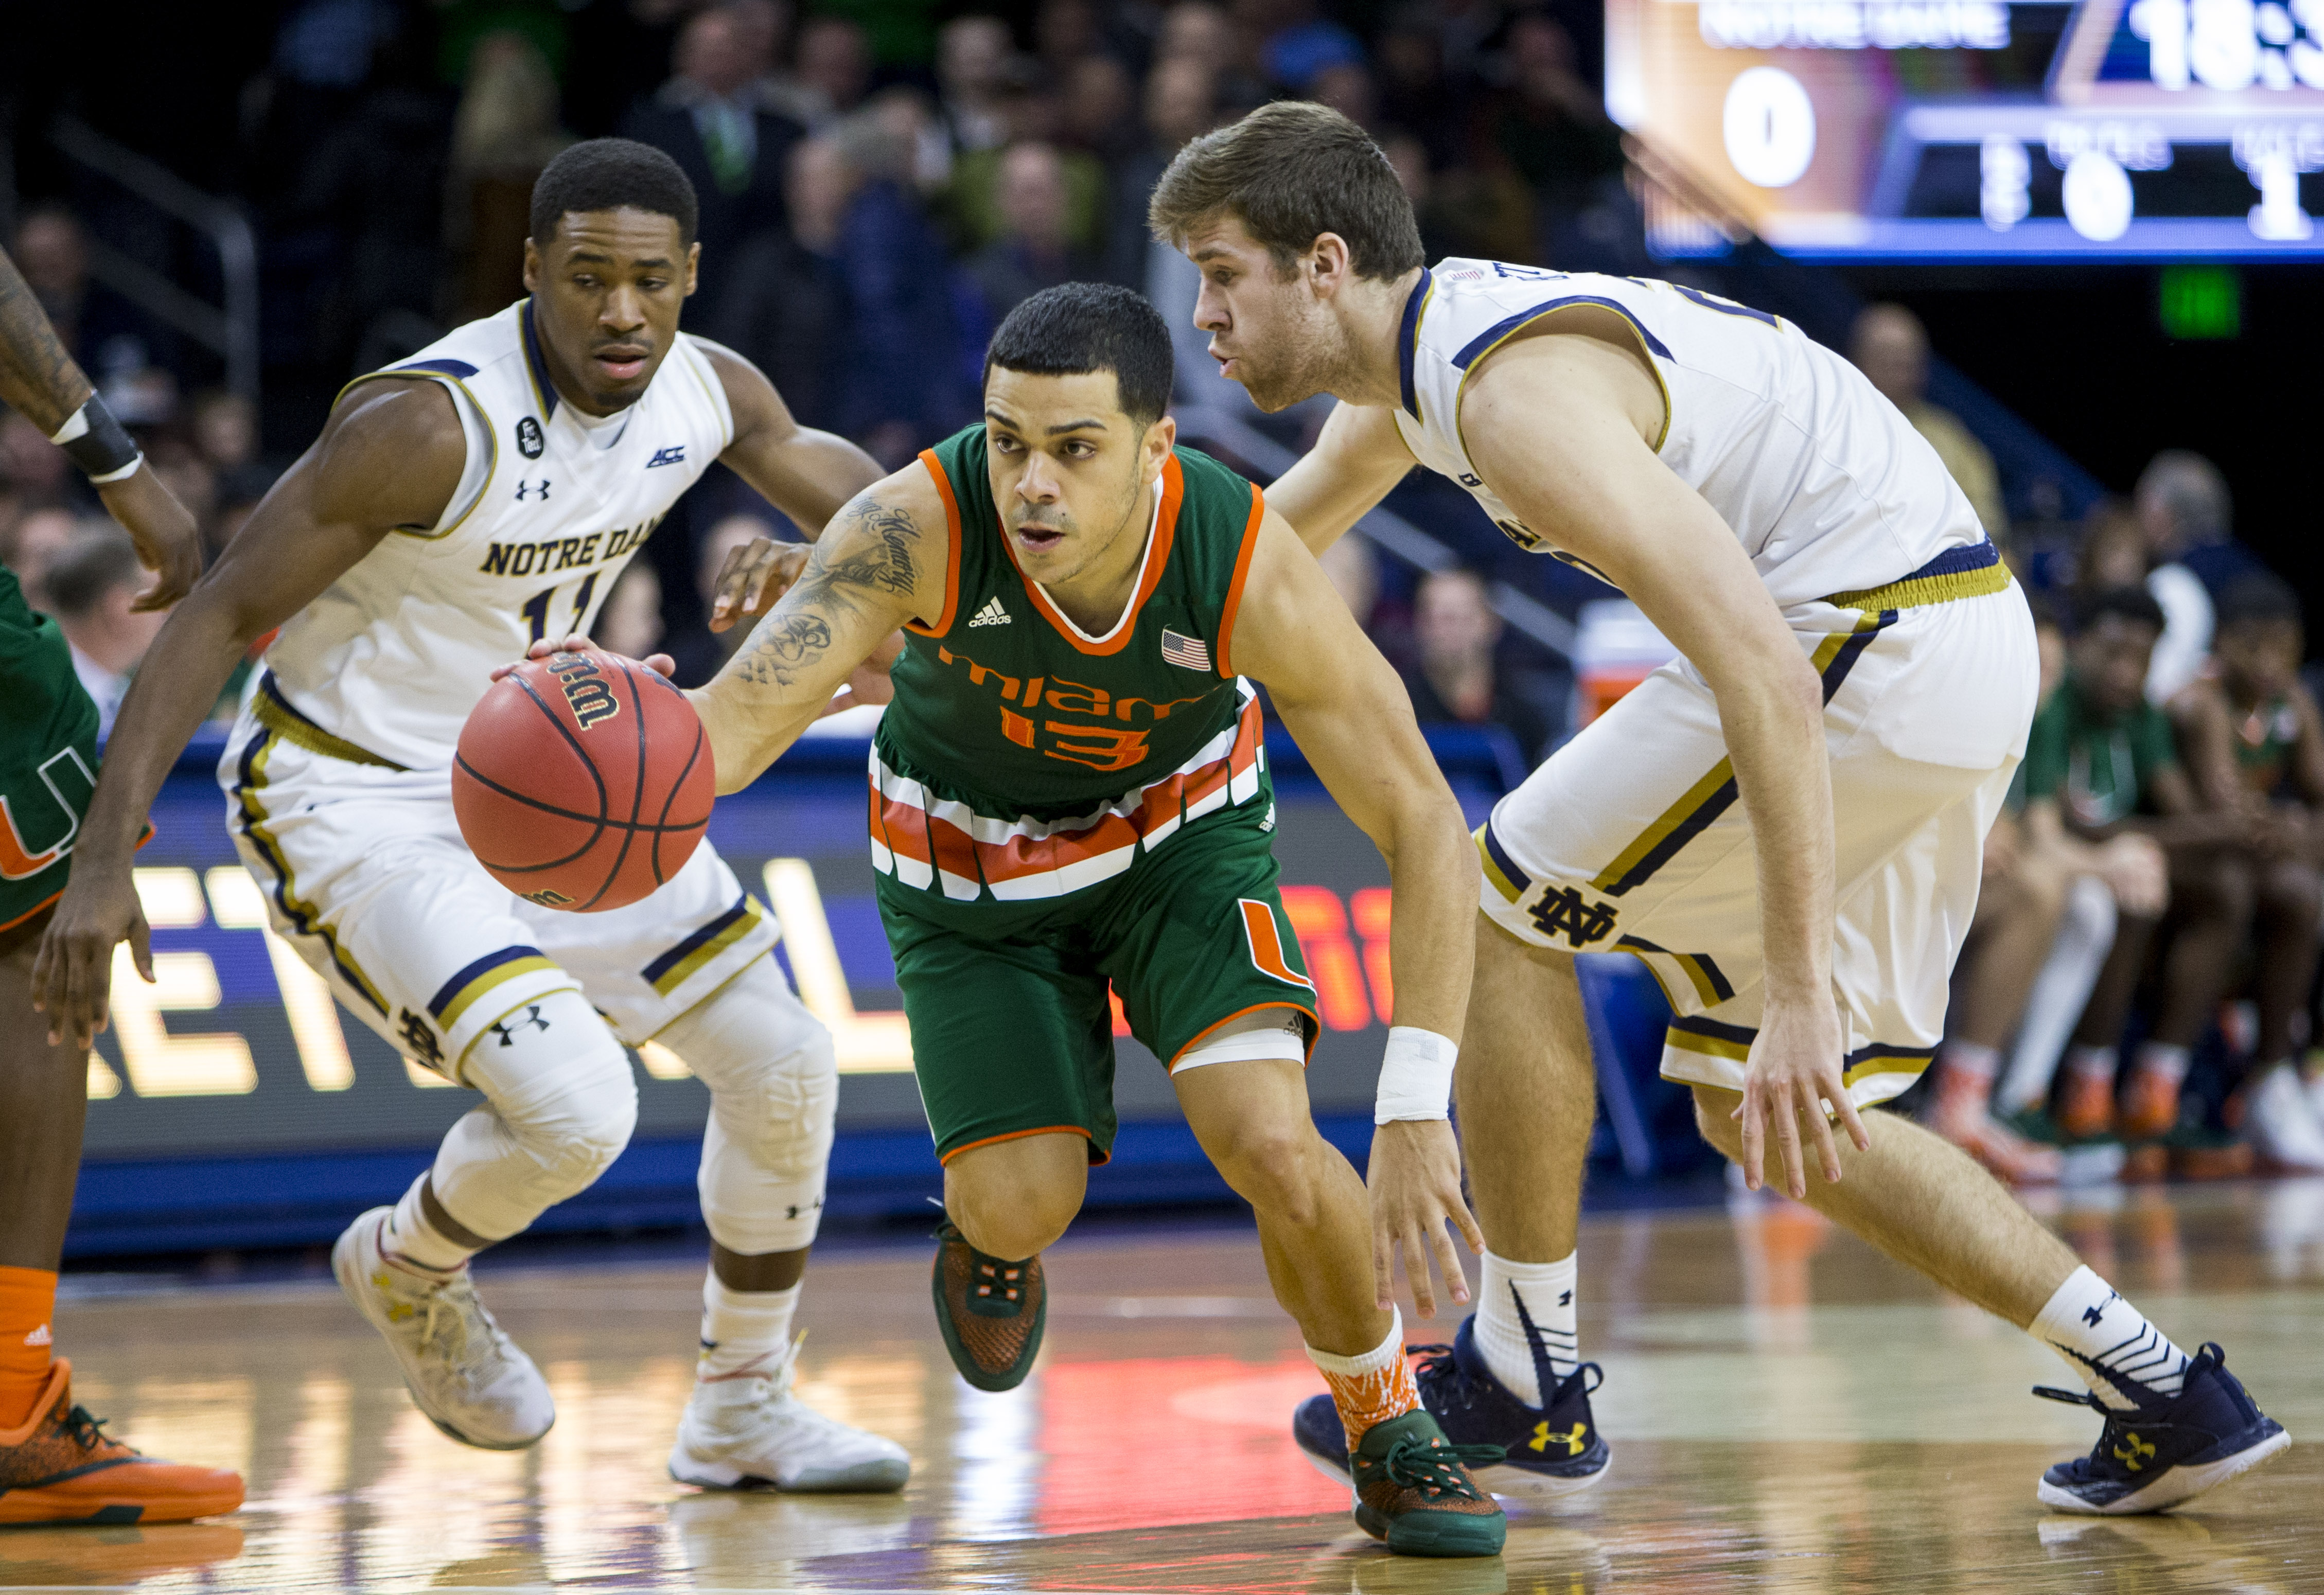 Miami's Angel Rodriguez (13) drives between Notre Dame's Demetrius Jackson (11) and A.J. Burgett, right, during the first half of an NCAA college basketball game Wednesday, March 2, 2016, in South Bend, Ind. (AP Photo/Robert Franklin)